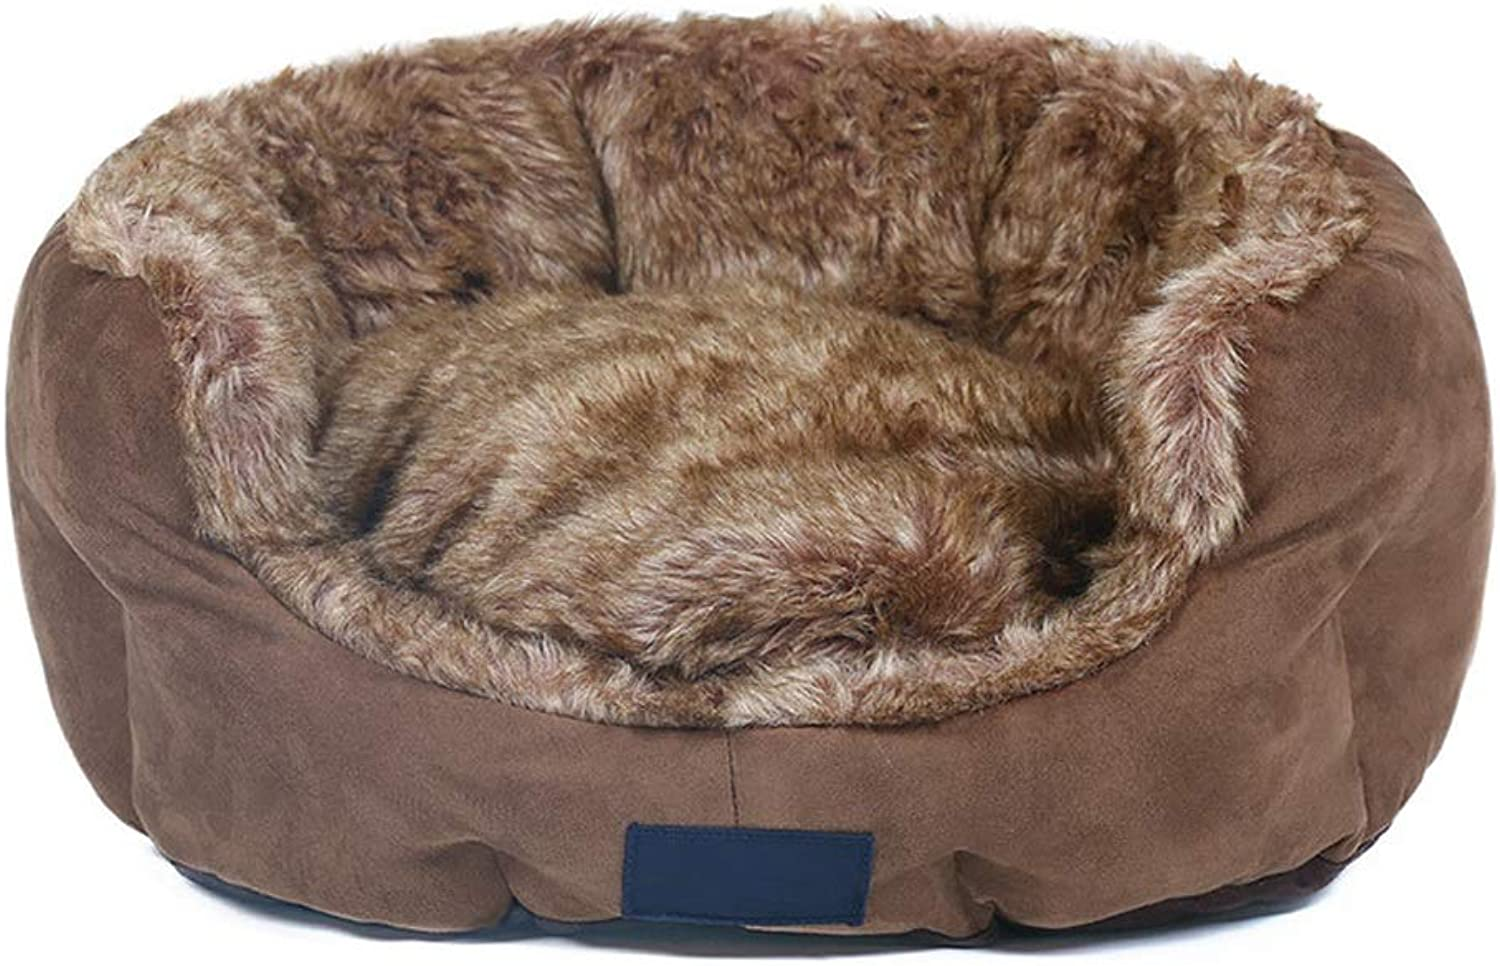 Alppq Coffee Tricolor Fur +Plush Kennel Four Seasons Universal Puppy House Detachable And Washable Small Dog Sofa Cat Nest Pet Bed Easy To Clean Bed Bolster Pet Cave Comfort Cat Dog Bed4540  18cm